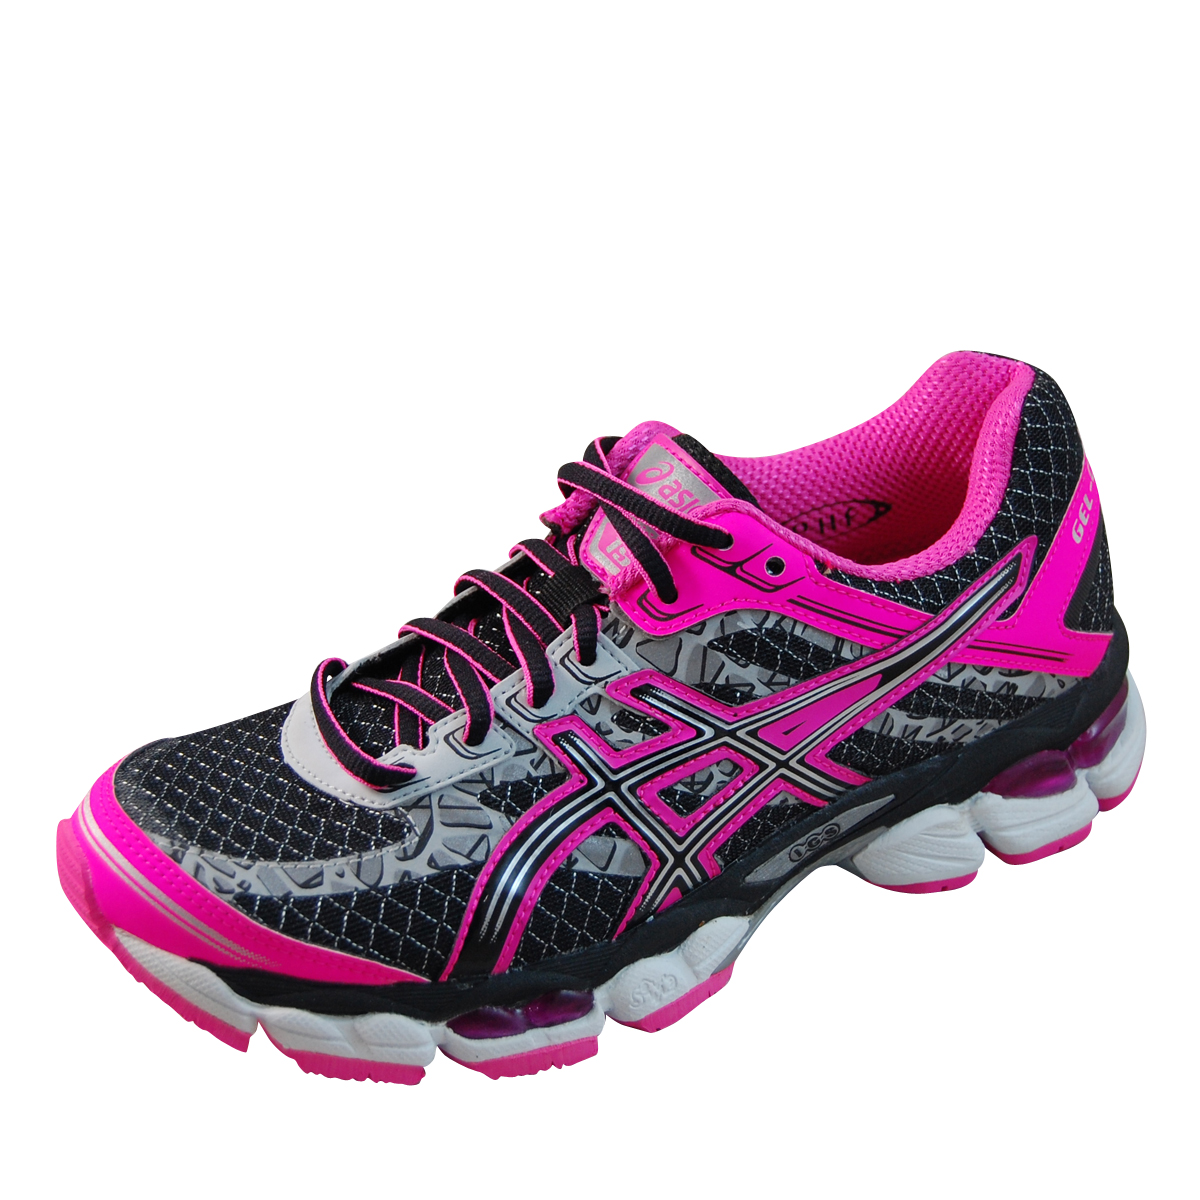 asics cumulus 15 ladies